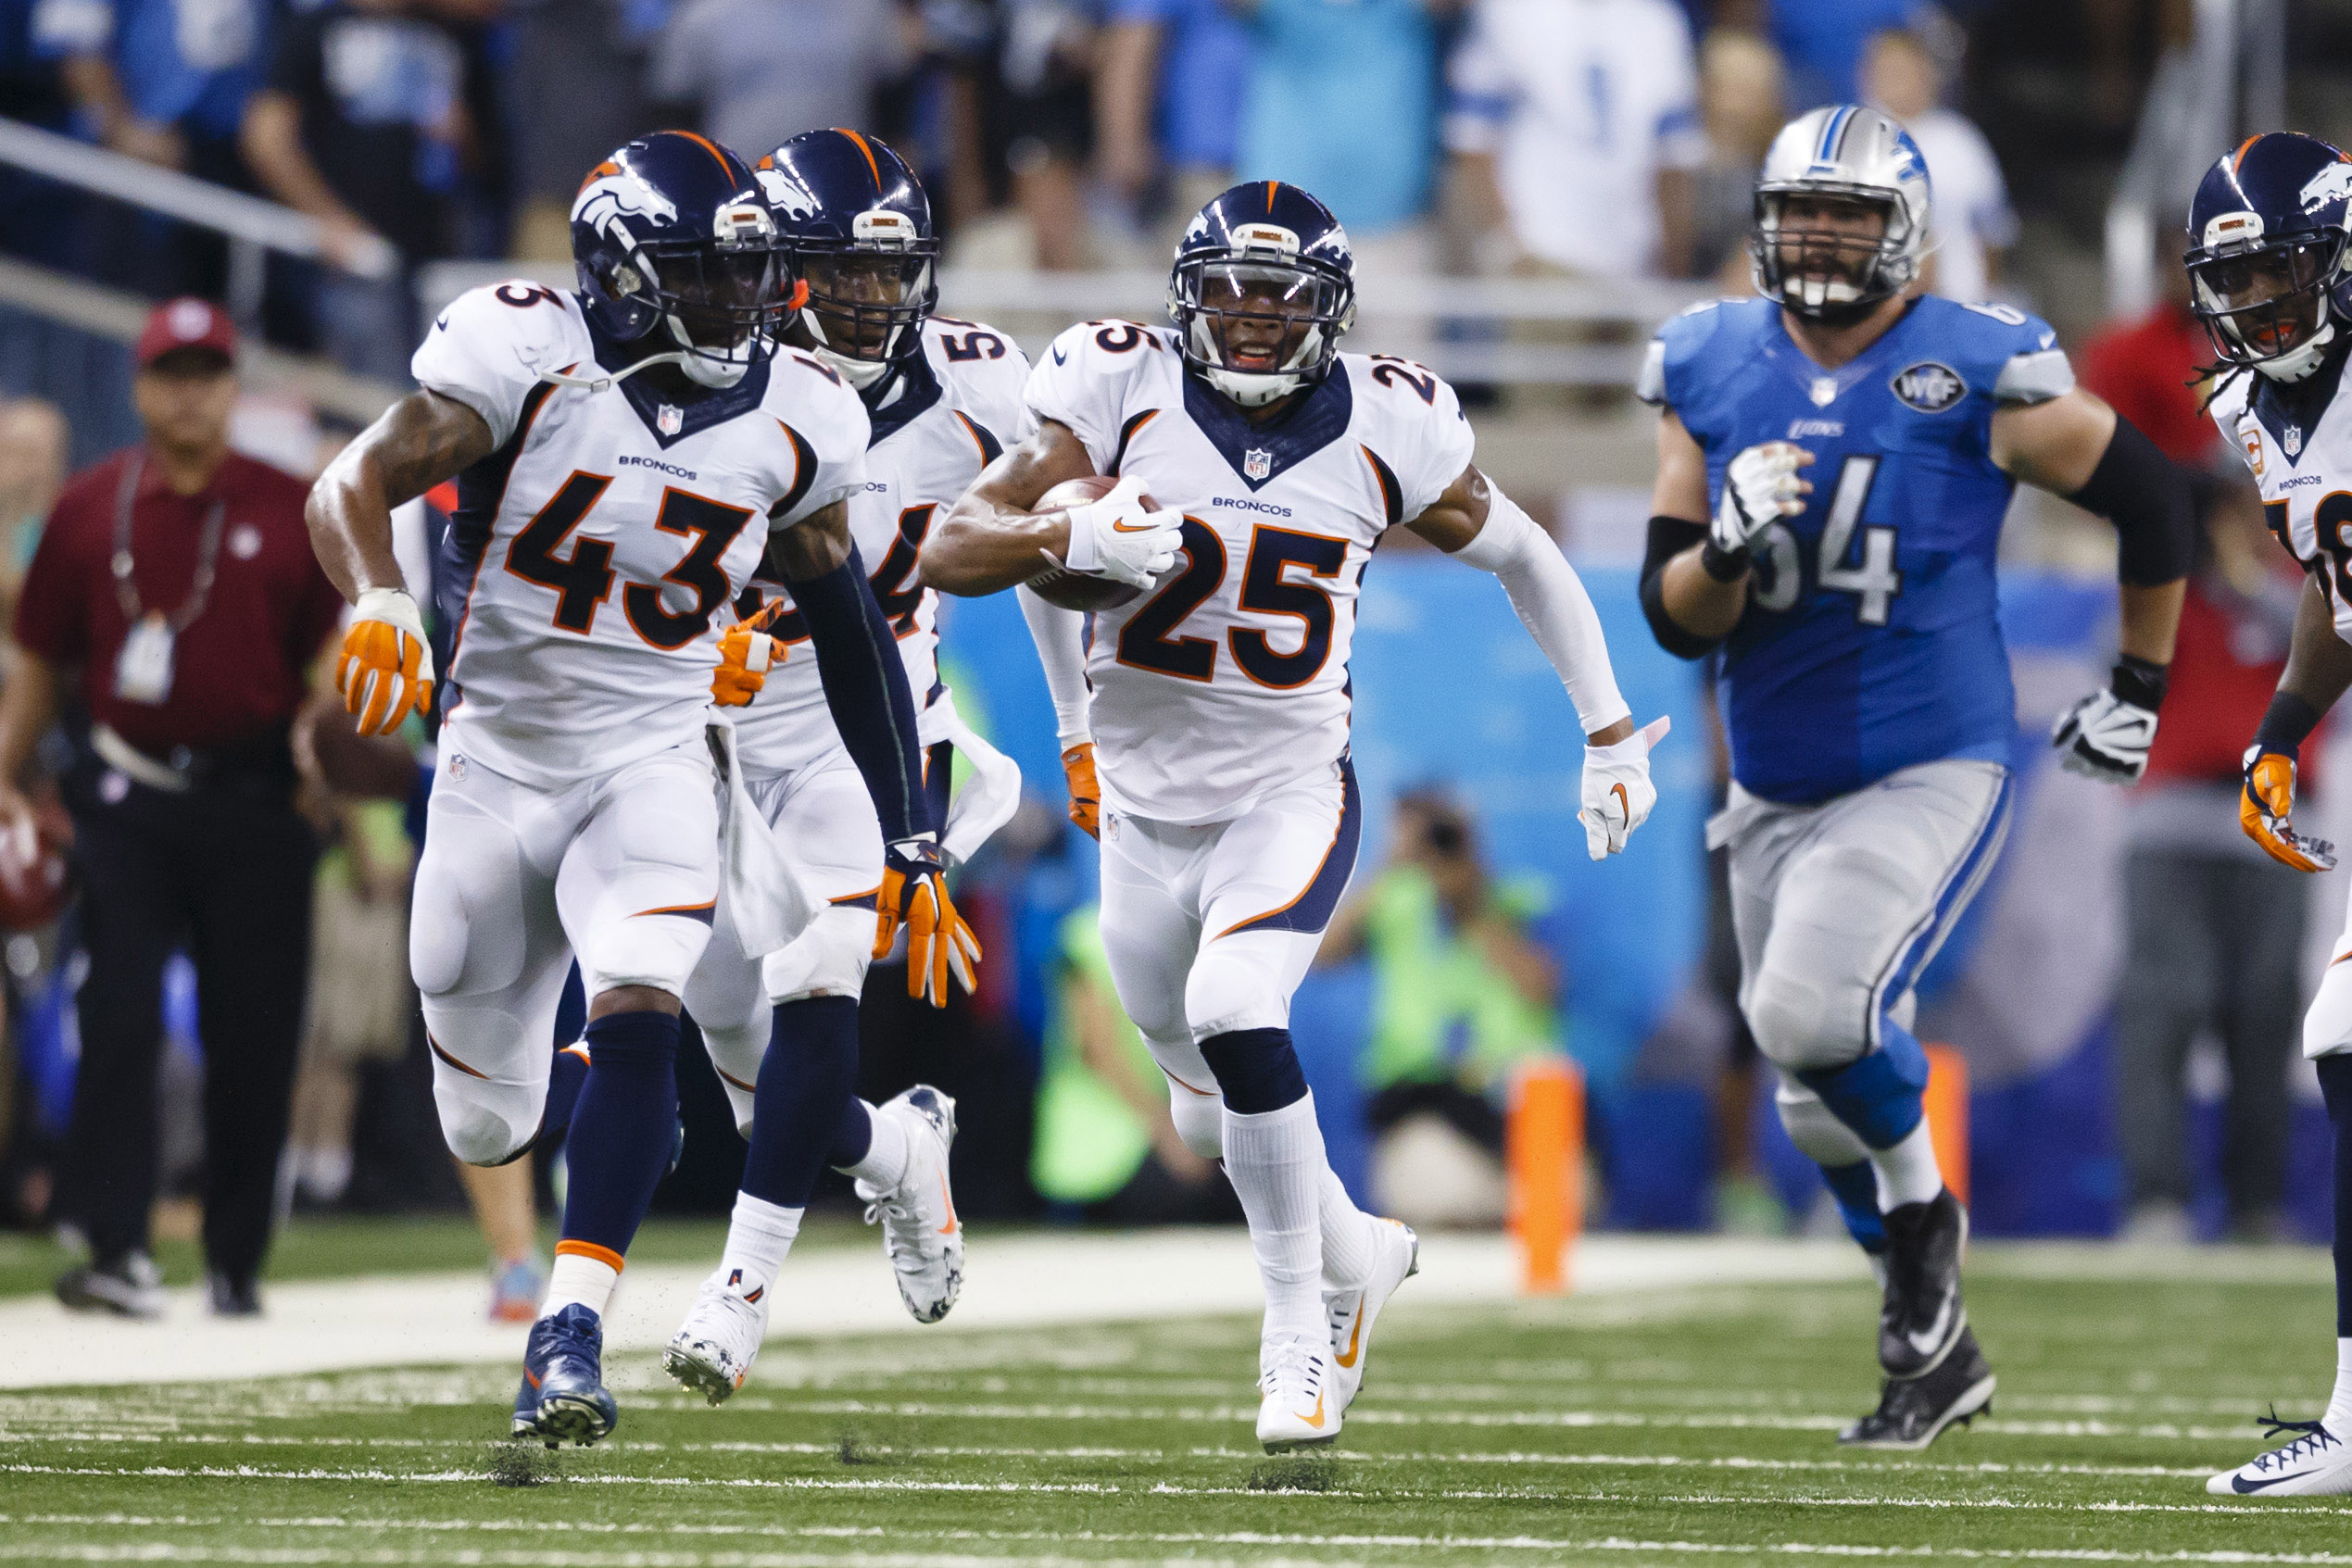 FILE - In this Sept. 27, 2015 file photo, Denver Broncos cornerback Chris Harris (25) runs the ball after a blocked extra point attempt against the Detroit Lions during an NFL football game at Ford Field in Detroit. Denver's defense, which finished No. 1